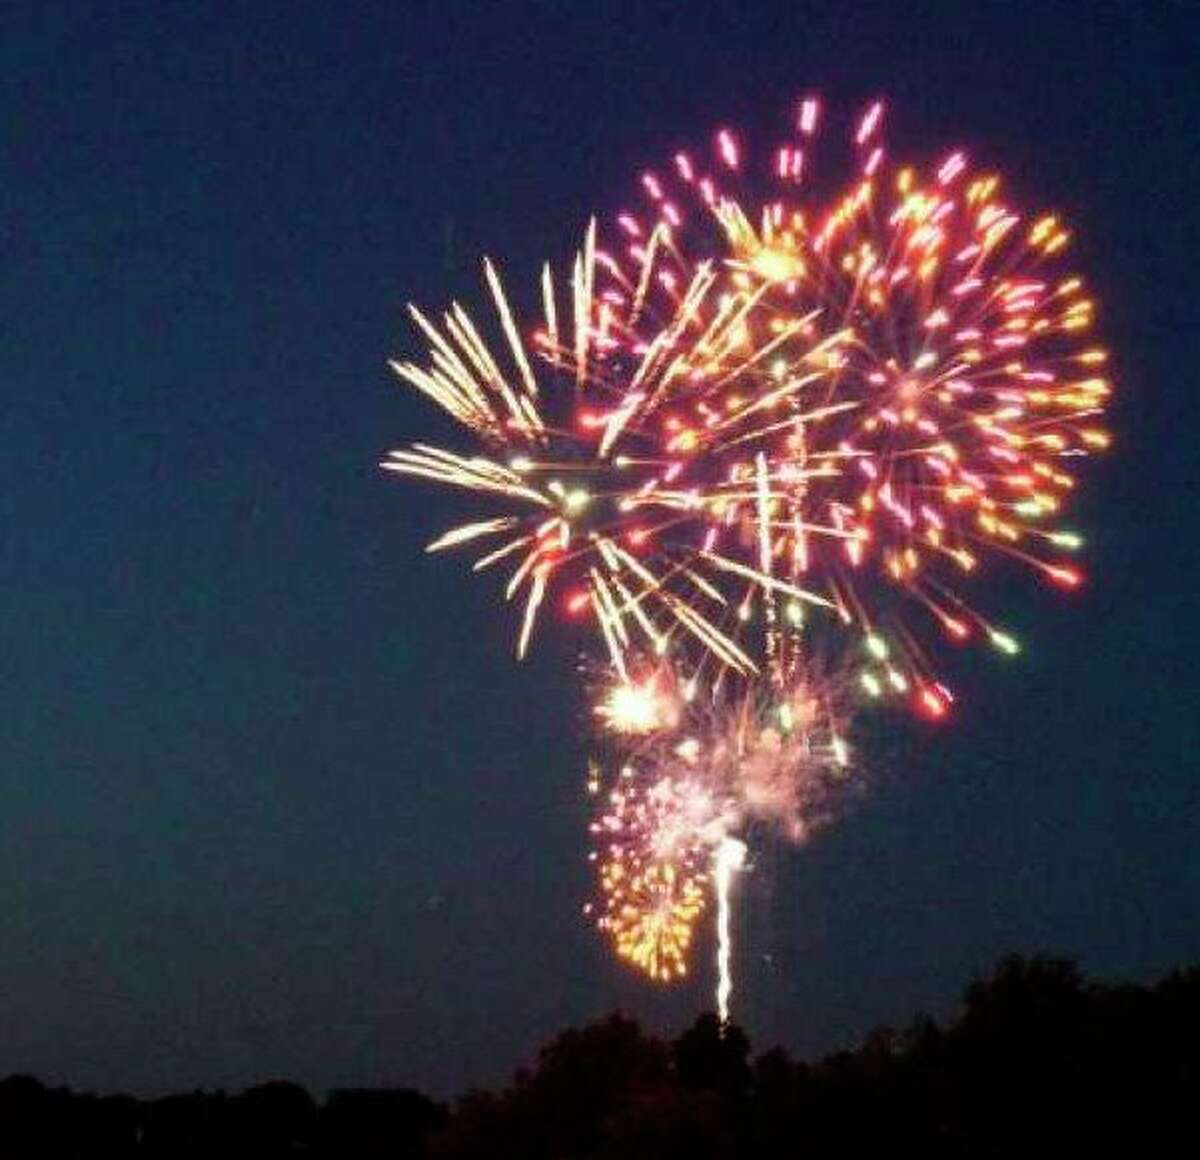 Fireworks will return to Big Rapids this year as part of the July 4 celebration. The Lions Club will host the event at the Mecosta County fairgrounds on July 2. (Pioneer file photo)